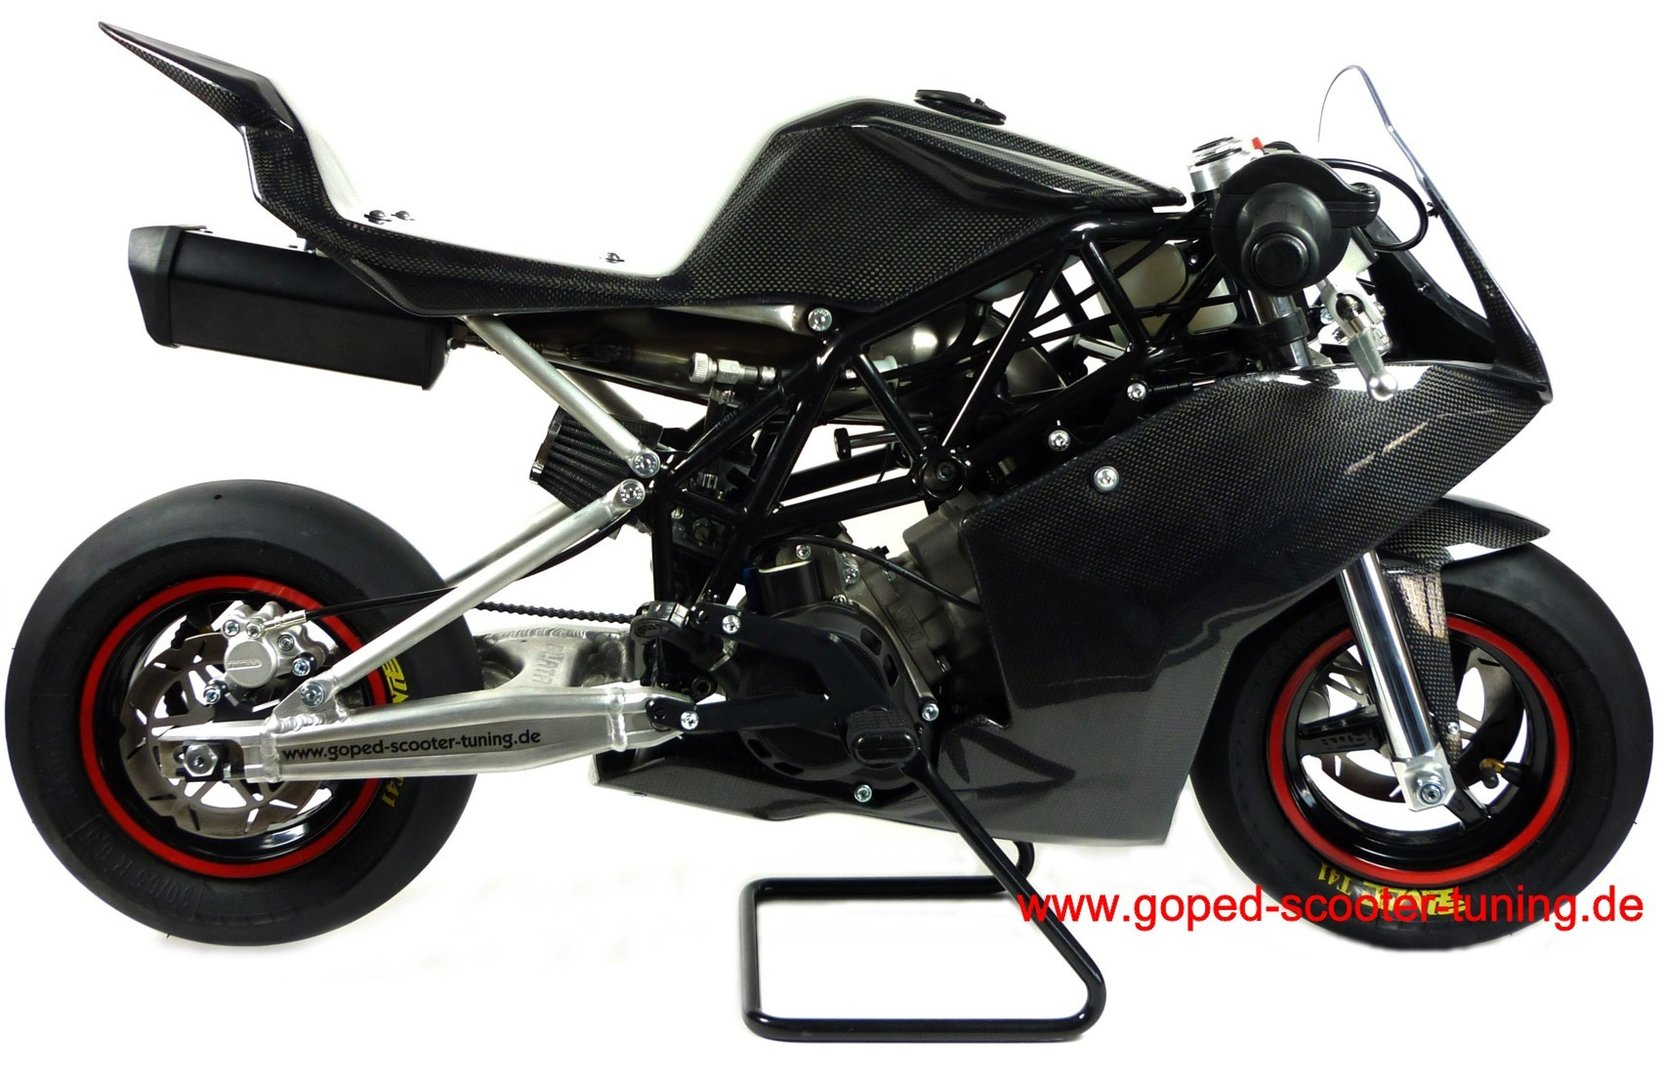 Scooter Tuning Shop : blata ultima w40 b minibike goped scooter tuning ~ Aude.kayakingforconservation.com Haus und Dekorationen